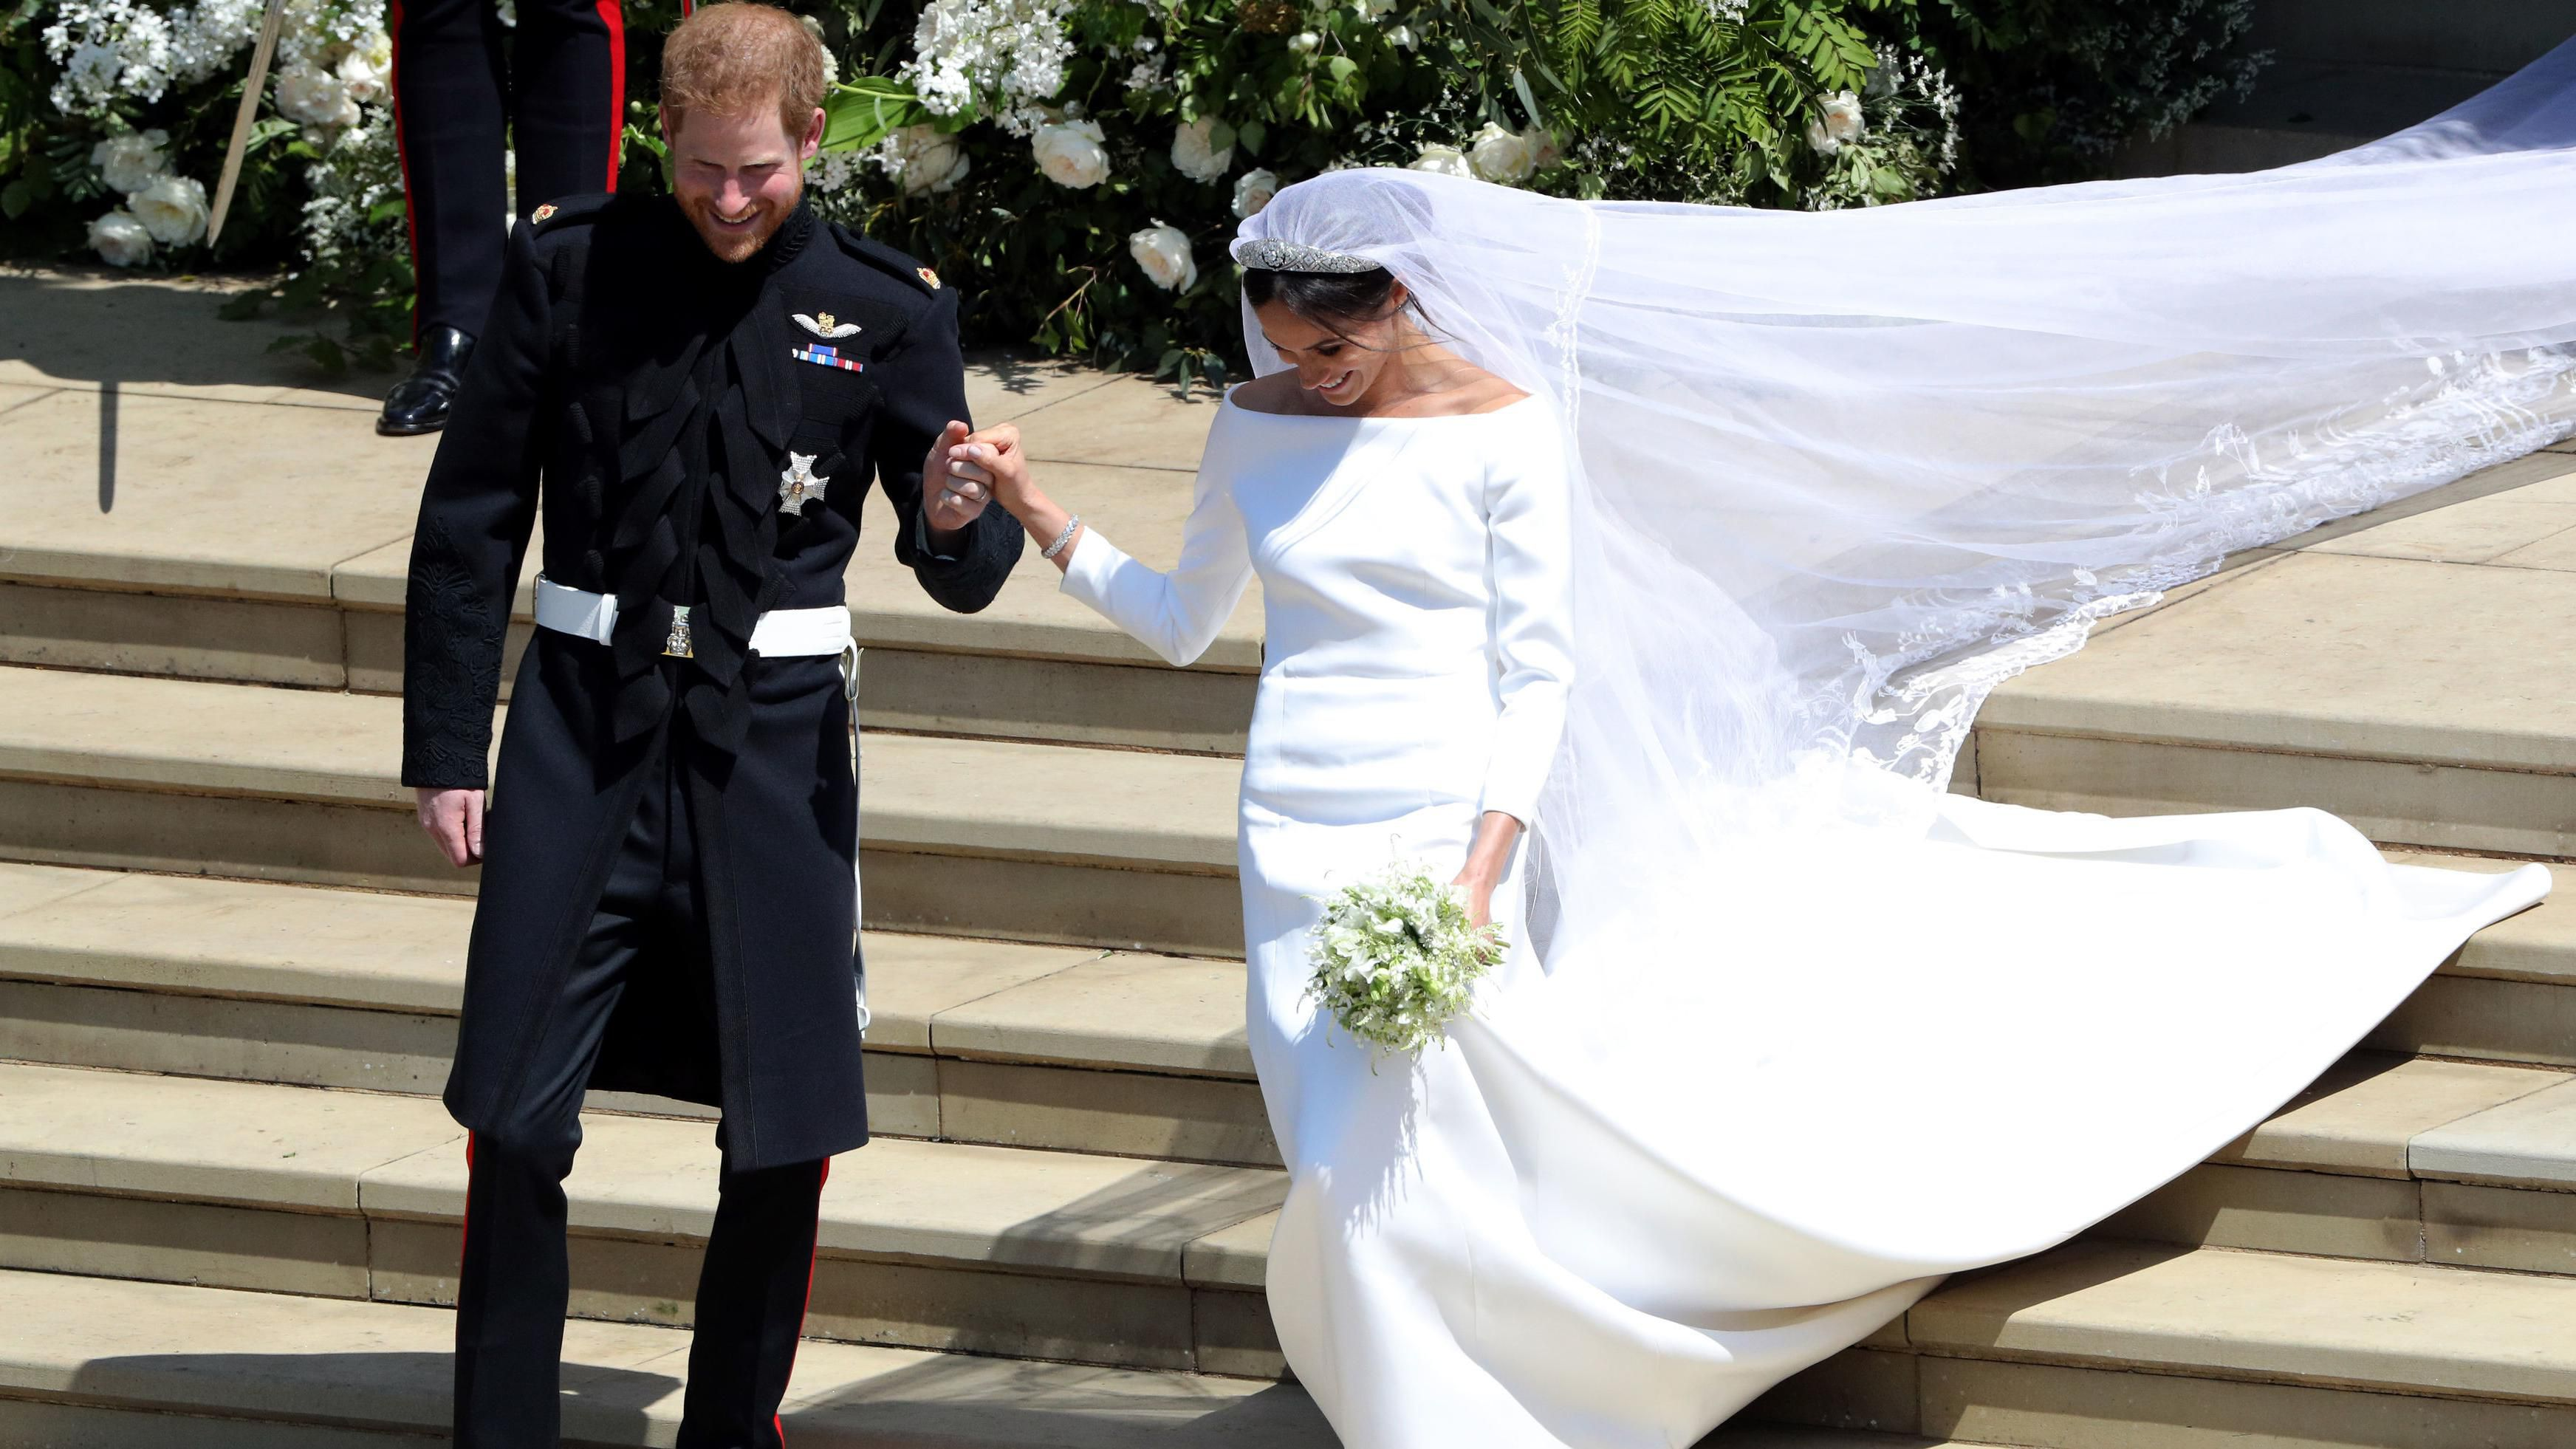 36 Royal Wedding Bouquets Throughout History